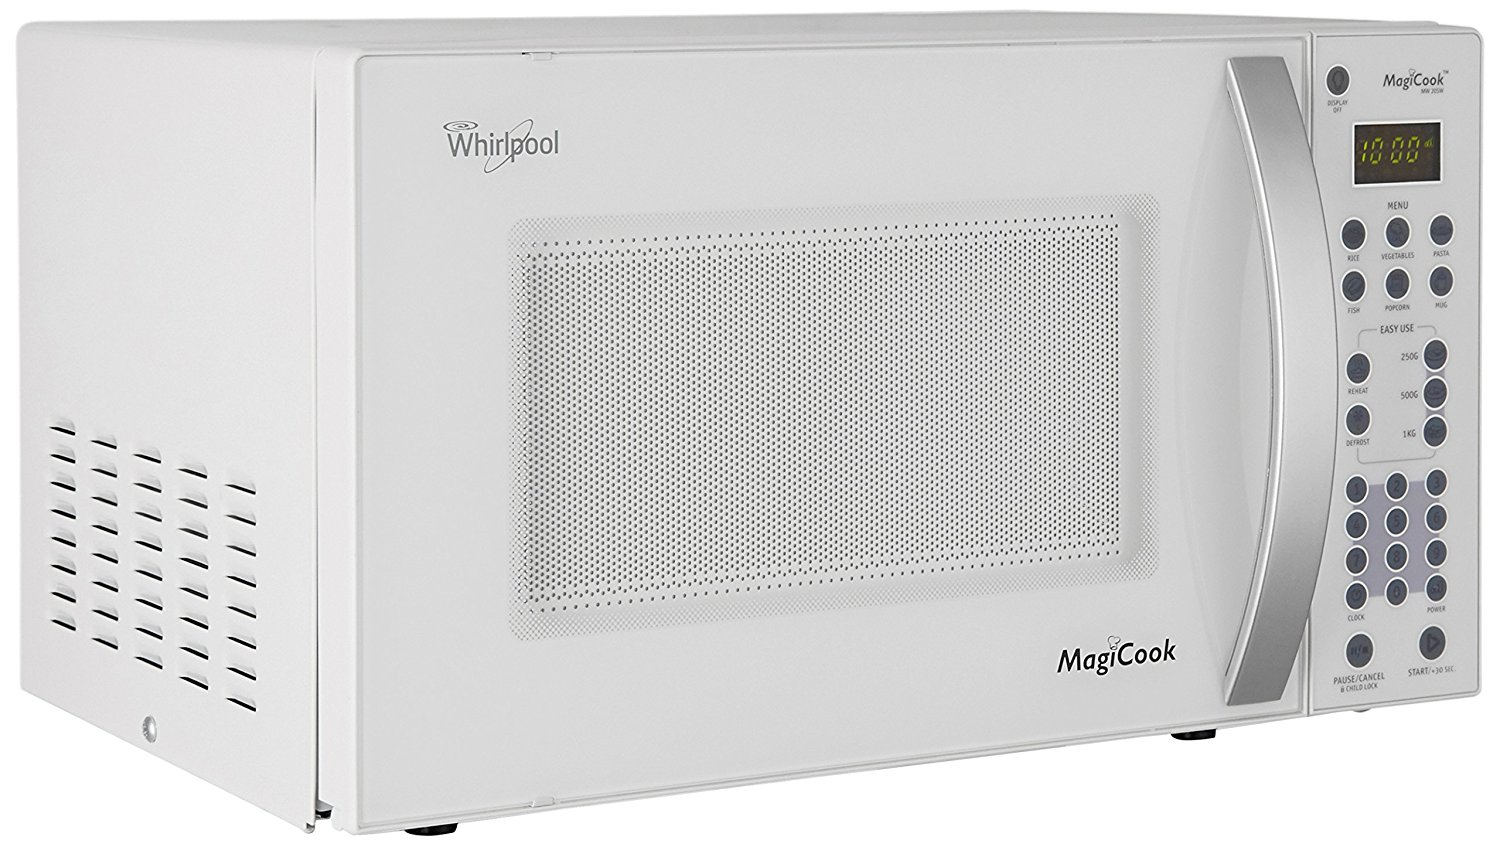 Whirlpool microwave oven black color